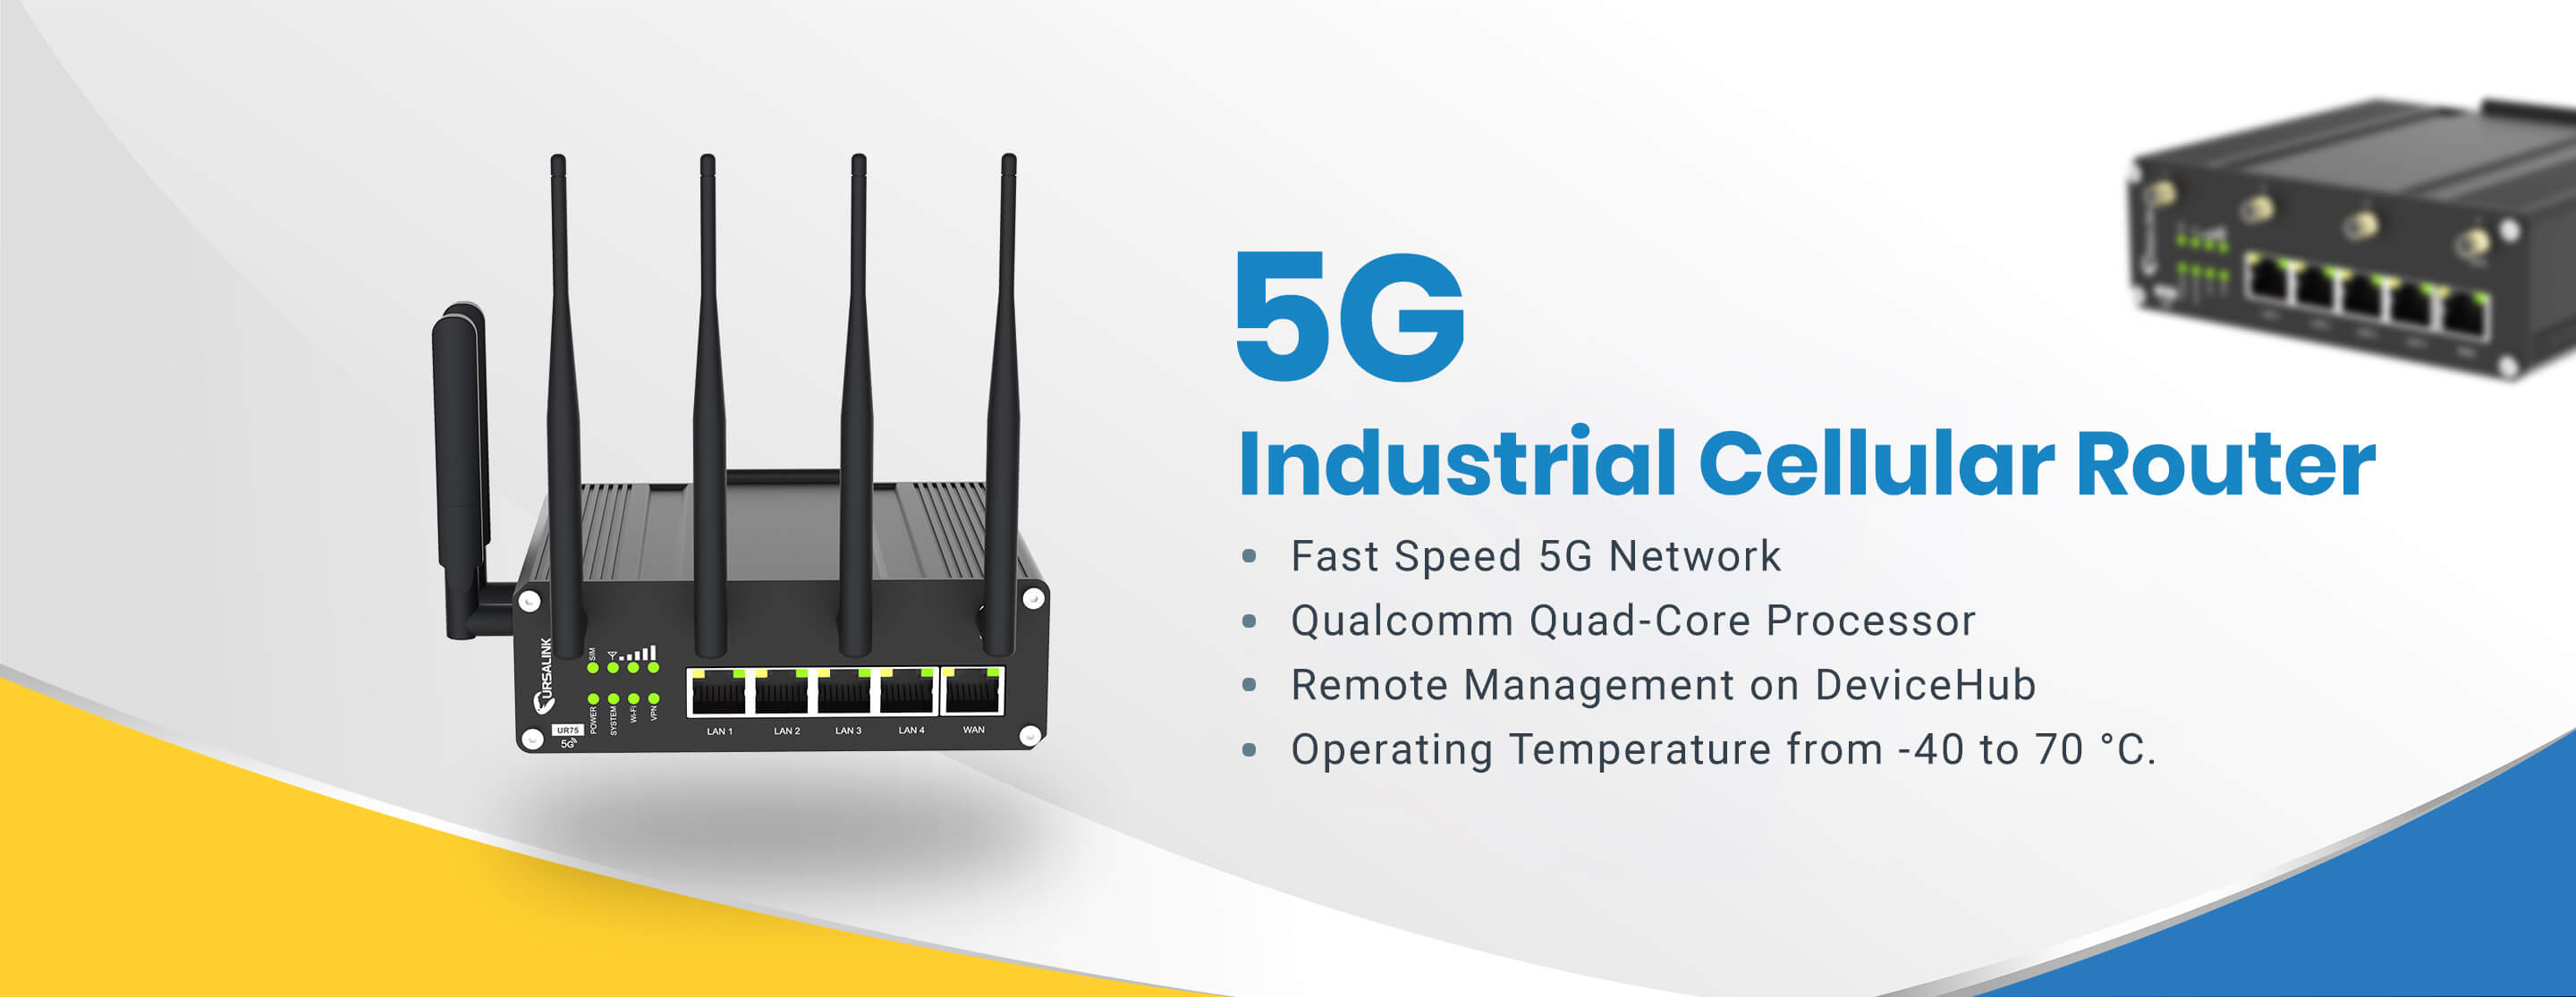 5g-industrial-router